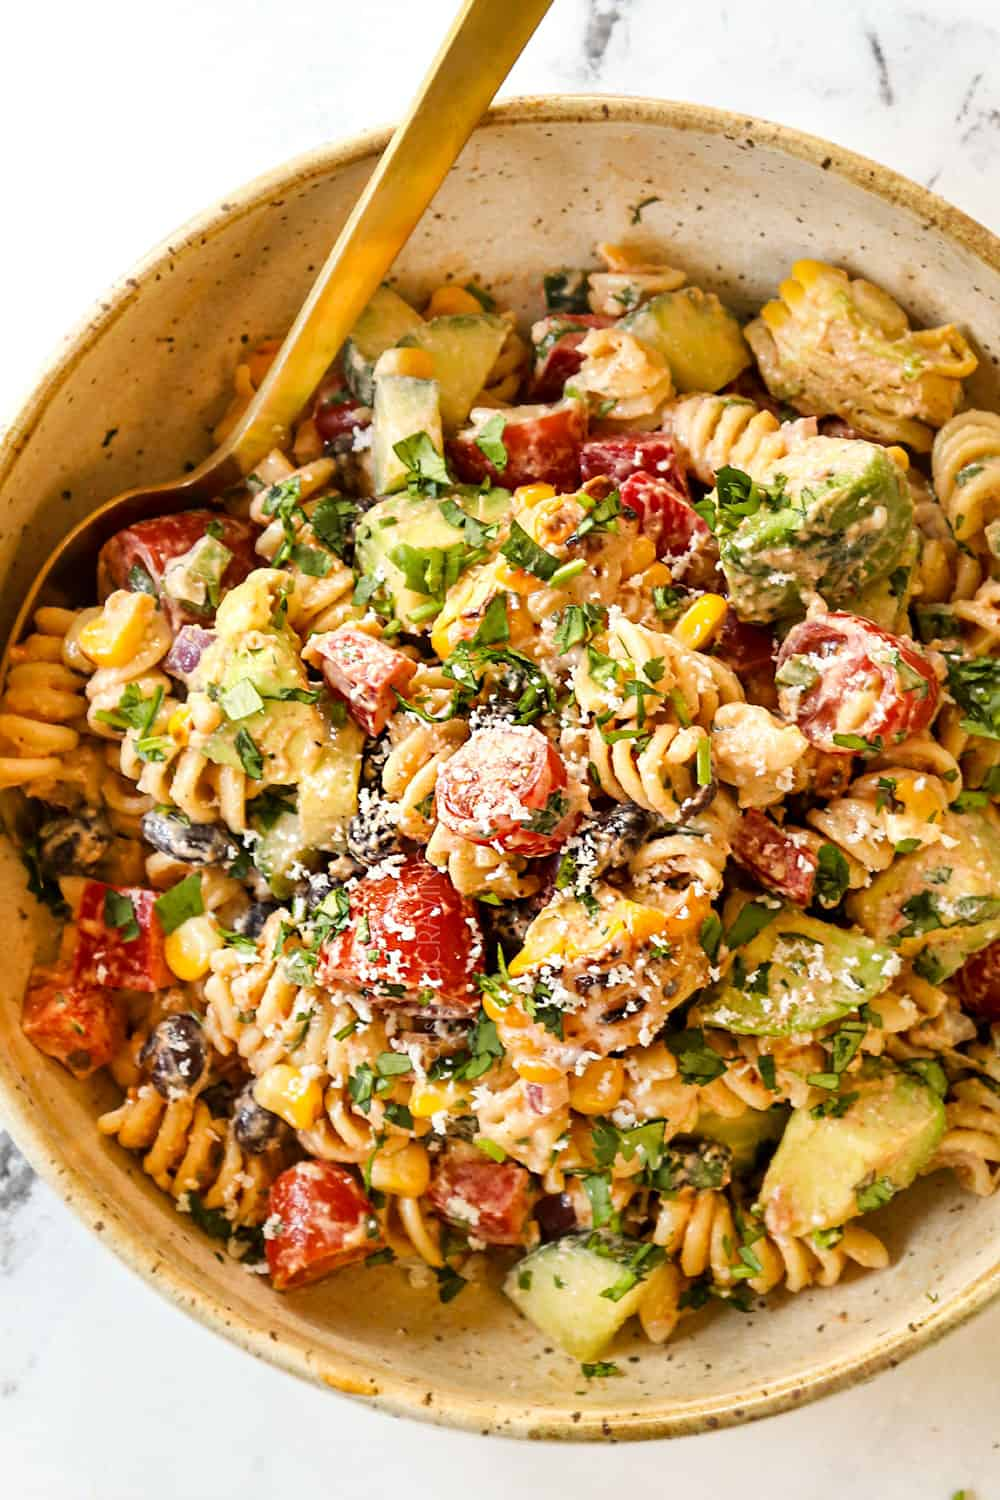 showing how to serve Mexican pasta salad by adding to a small bowl and garnishing with cilantro and Cotija cheese